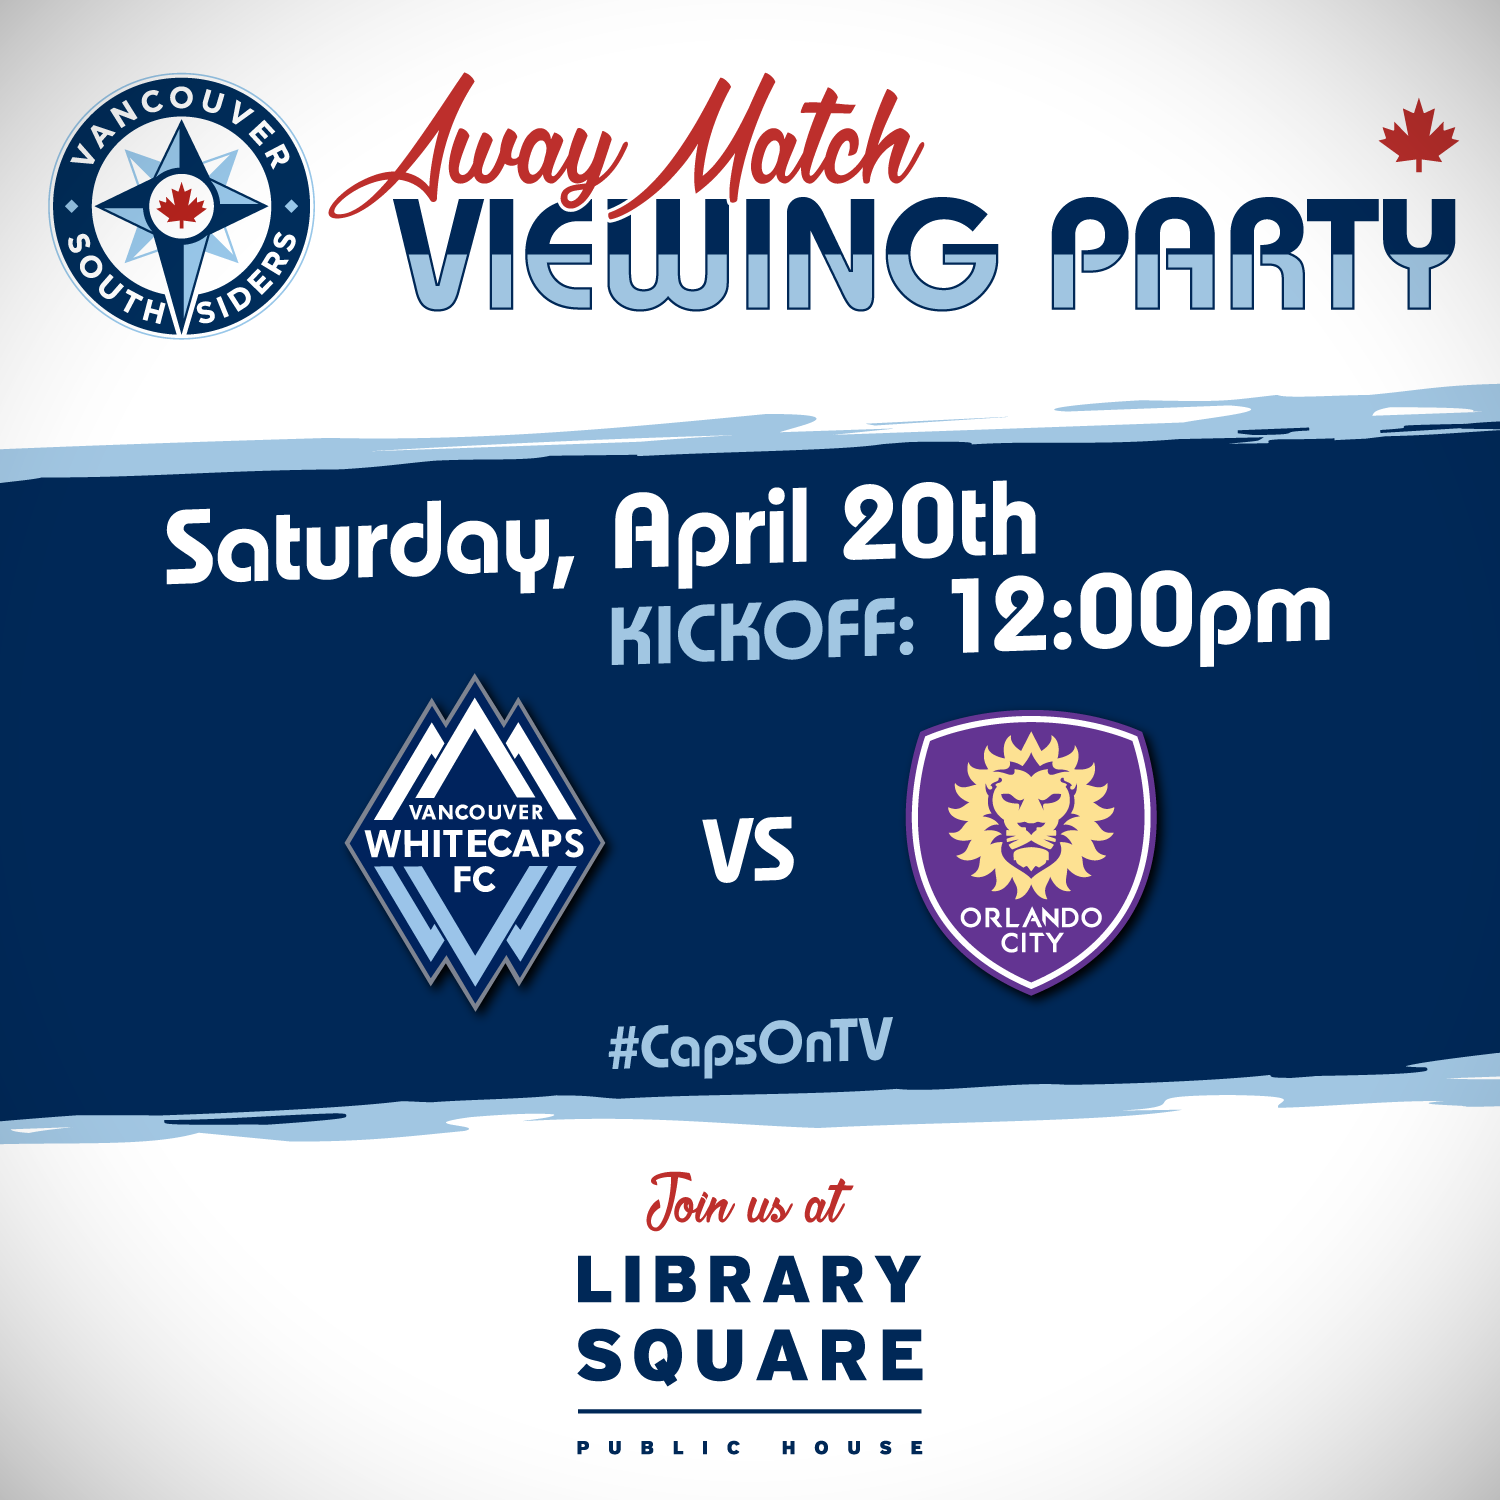 Away match viewing party, Saturday, April 20th. Kickoff 12:00pm